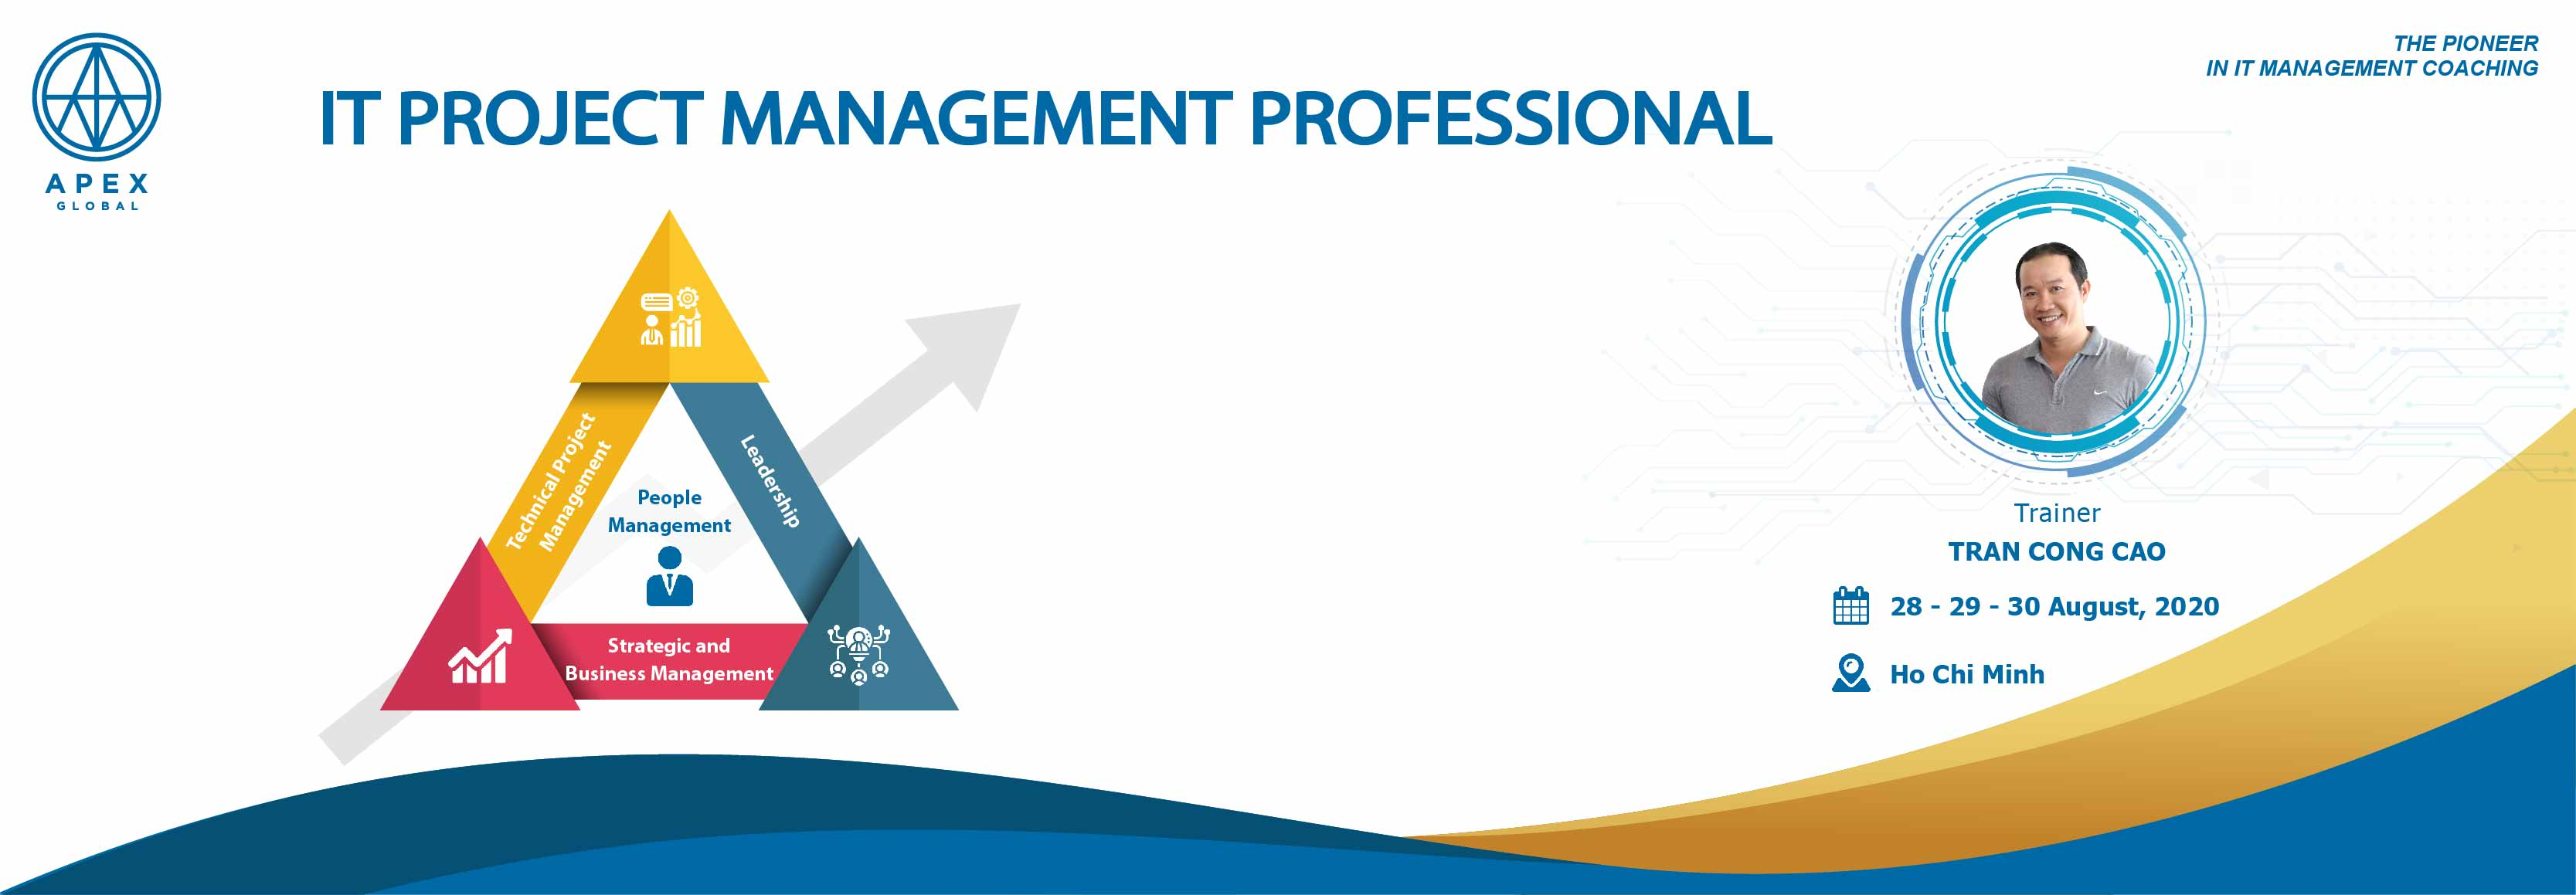 IT-Project-Management-Professional